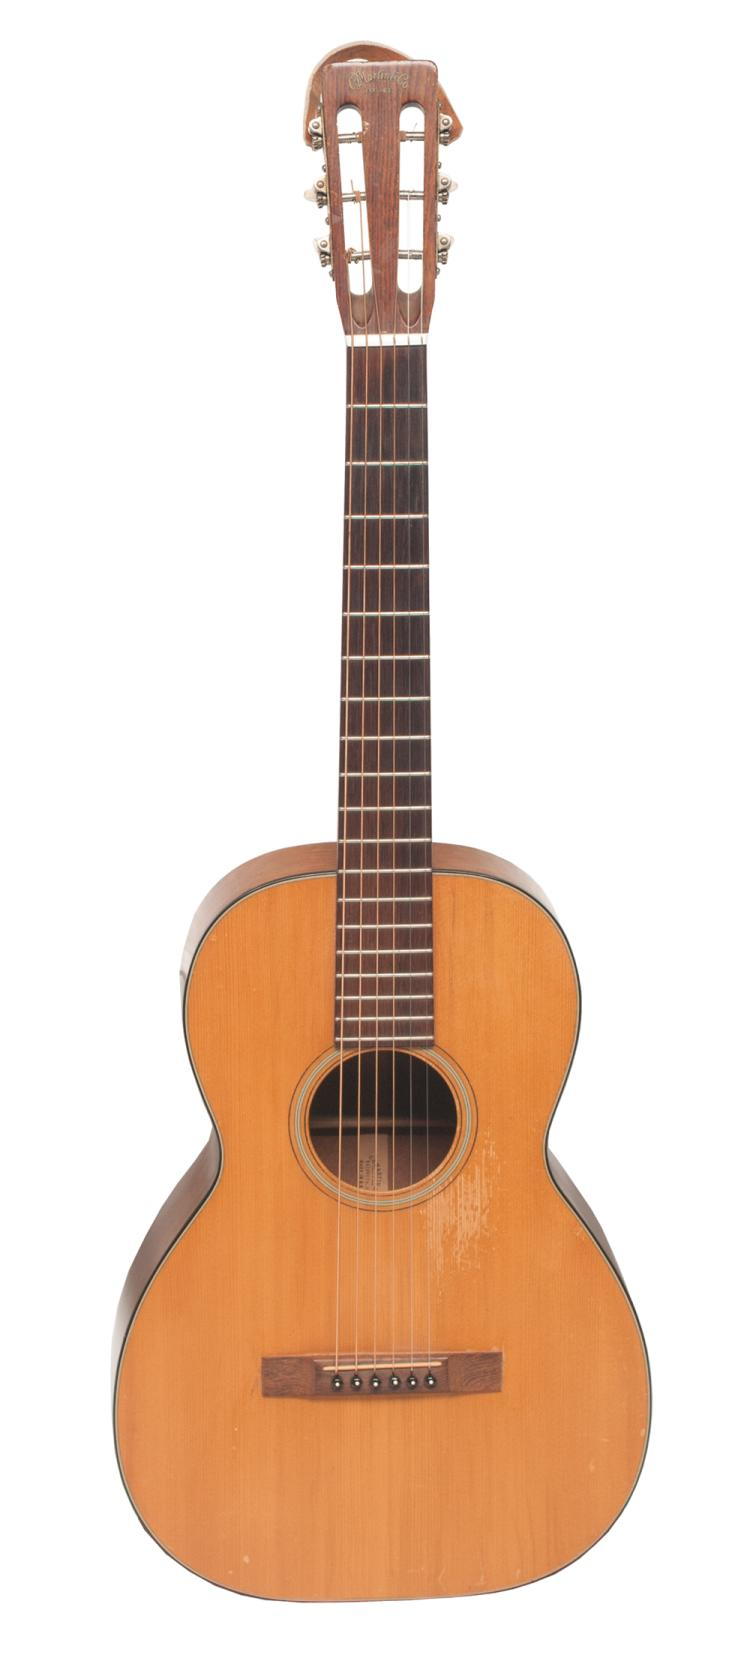 Martin O16NY guitar, serial # 219370, c.1961 in a fitted case, owned and played by Tom T. Hall